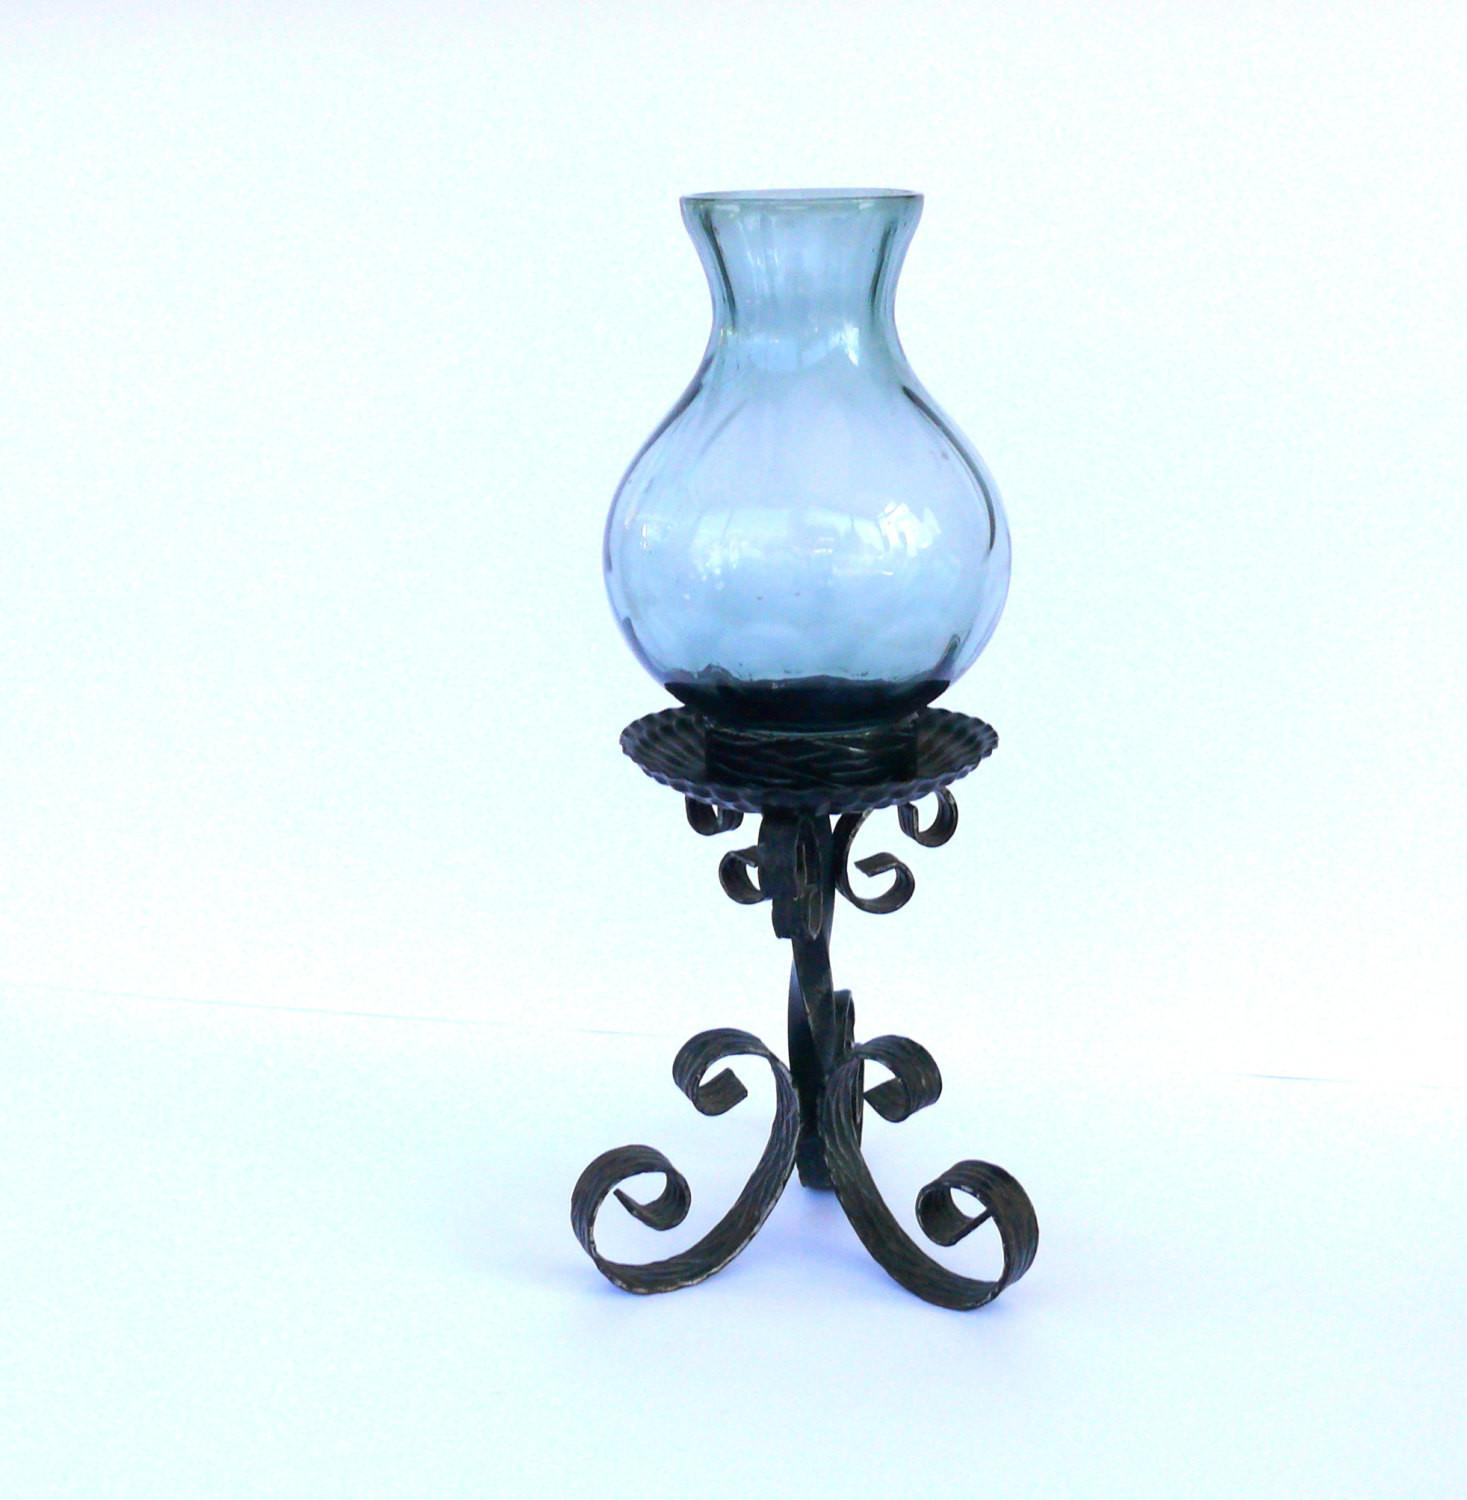 Vintage Rustic Wrought Iron Candle Holder Metal Stick